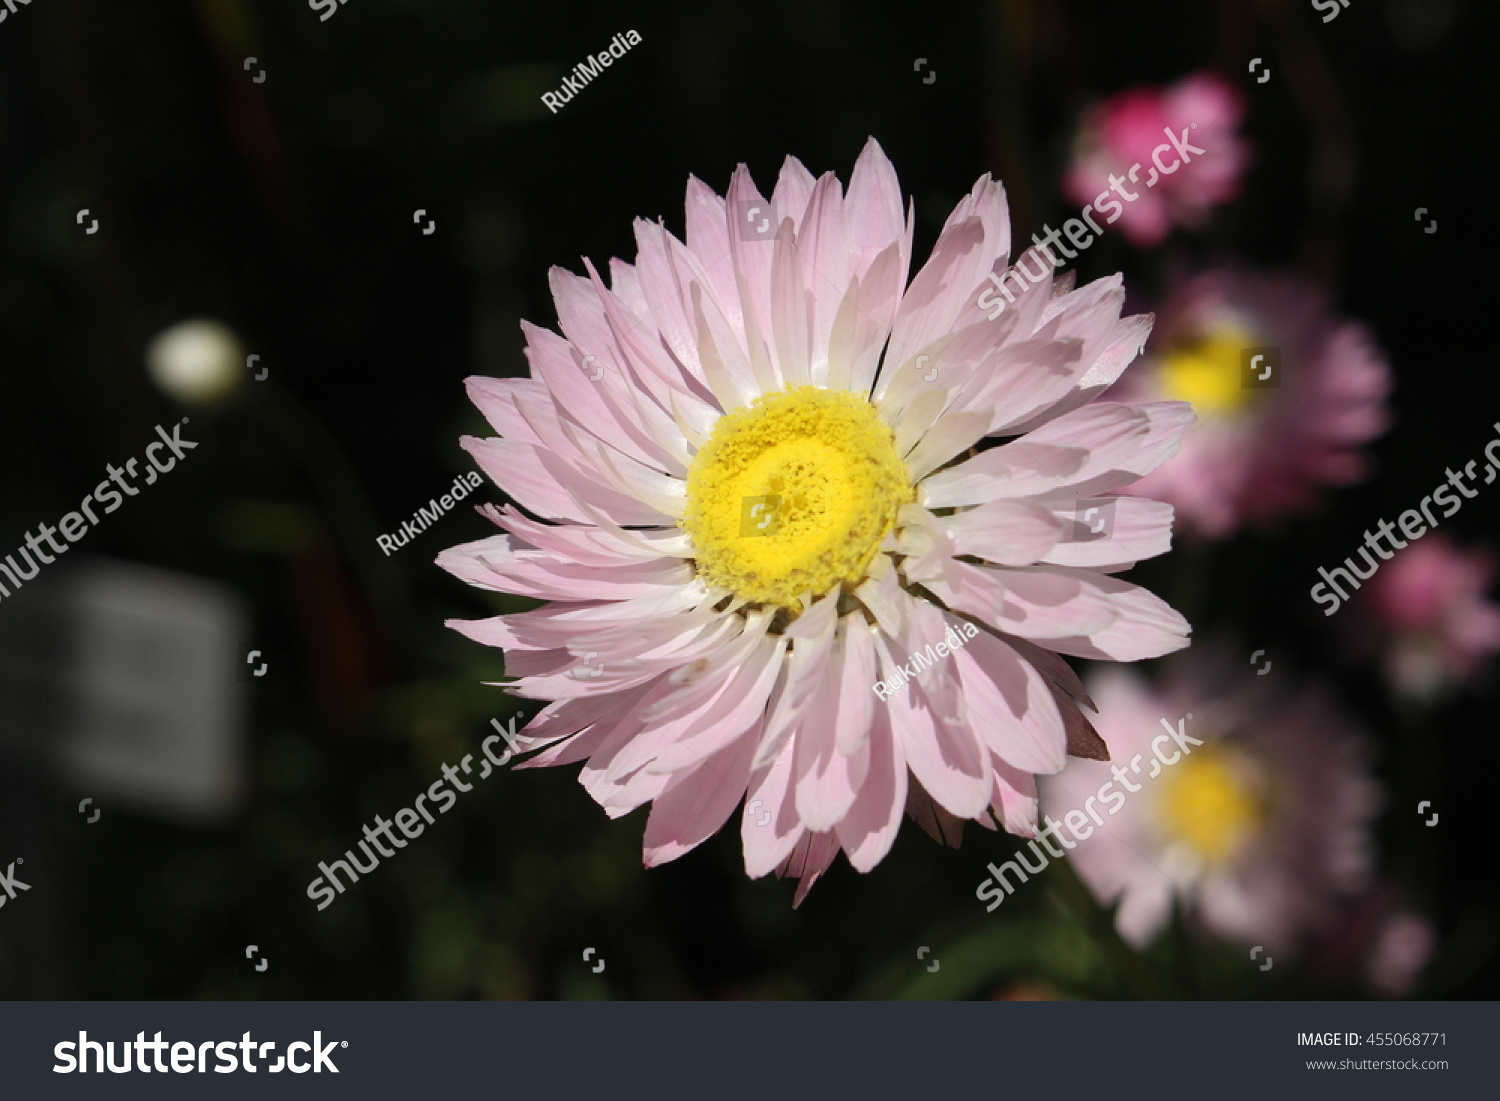 Royalty Free Paper Daisy Flower In St Gallen 455068771 Stock